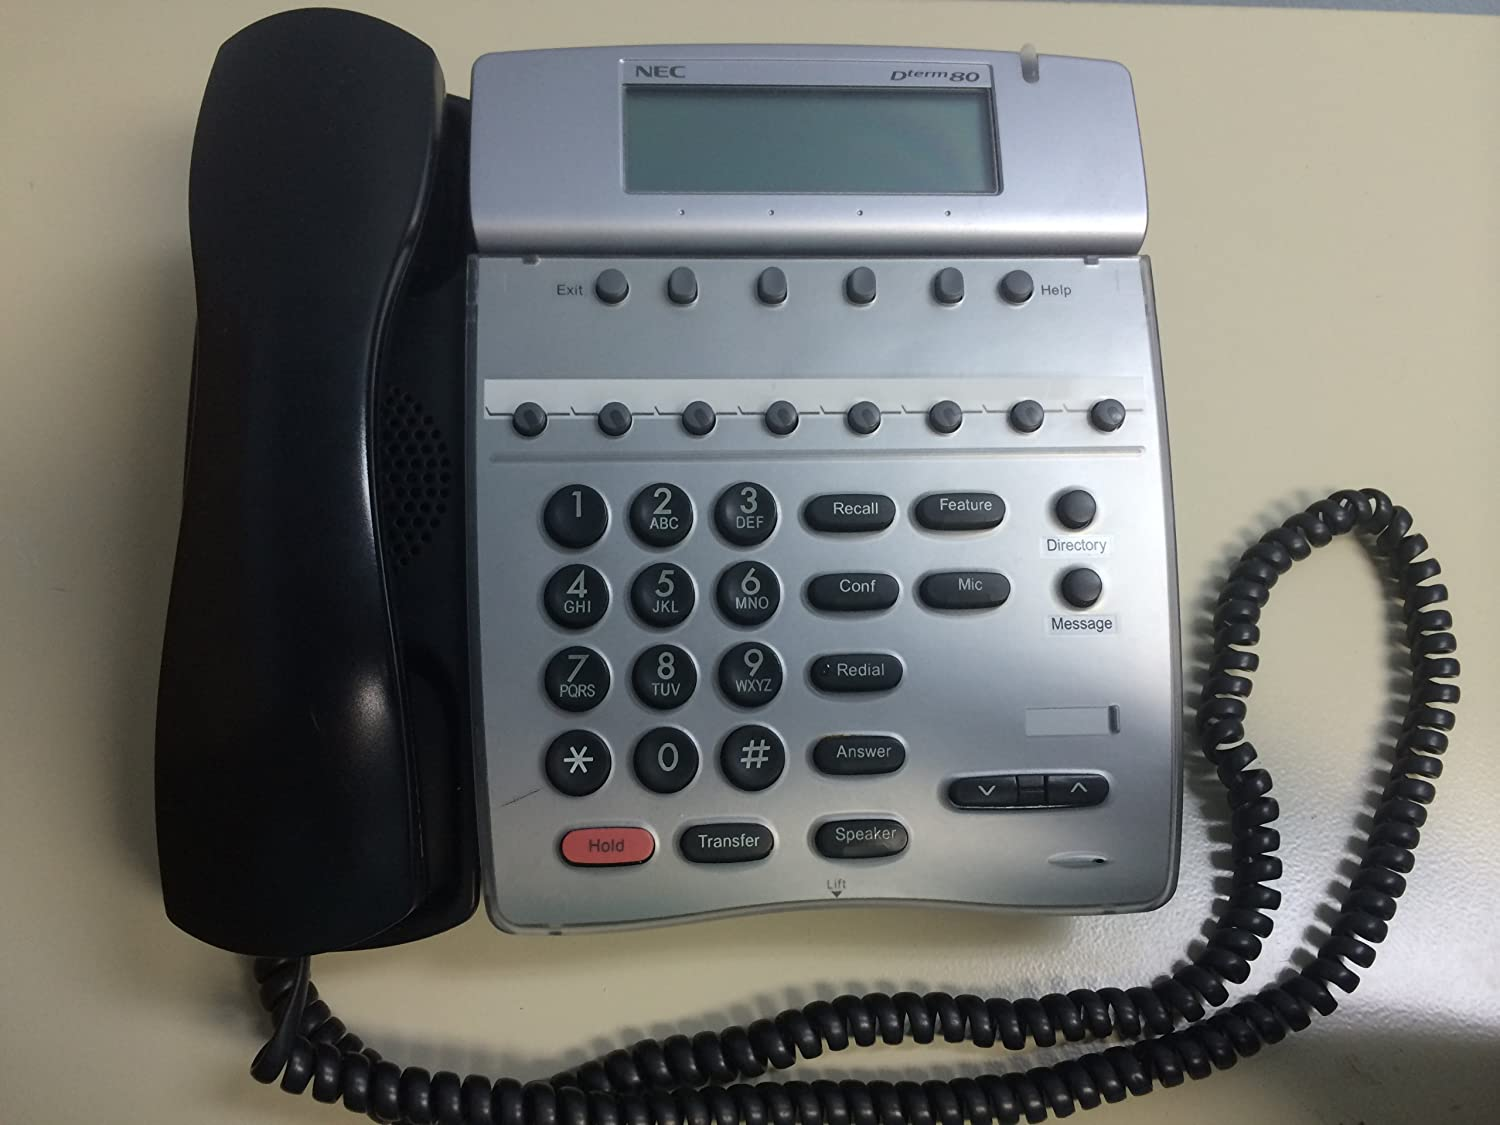 Amazon.com : NEC DTH-8D-2 Phone DTH-8D-2(BK) 780571 : Pbx Telephones And  Systems : Office Products